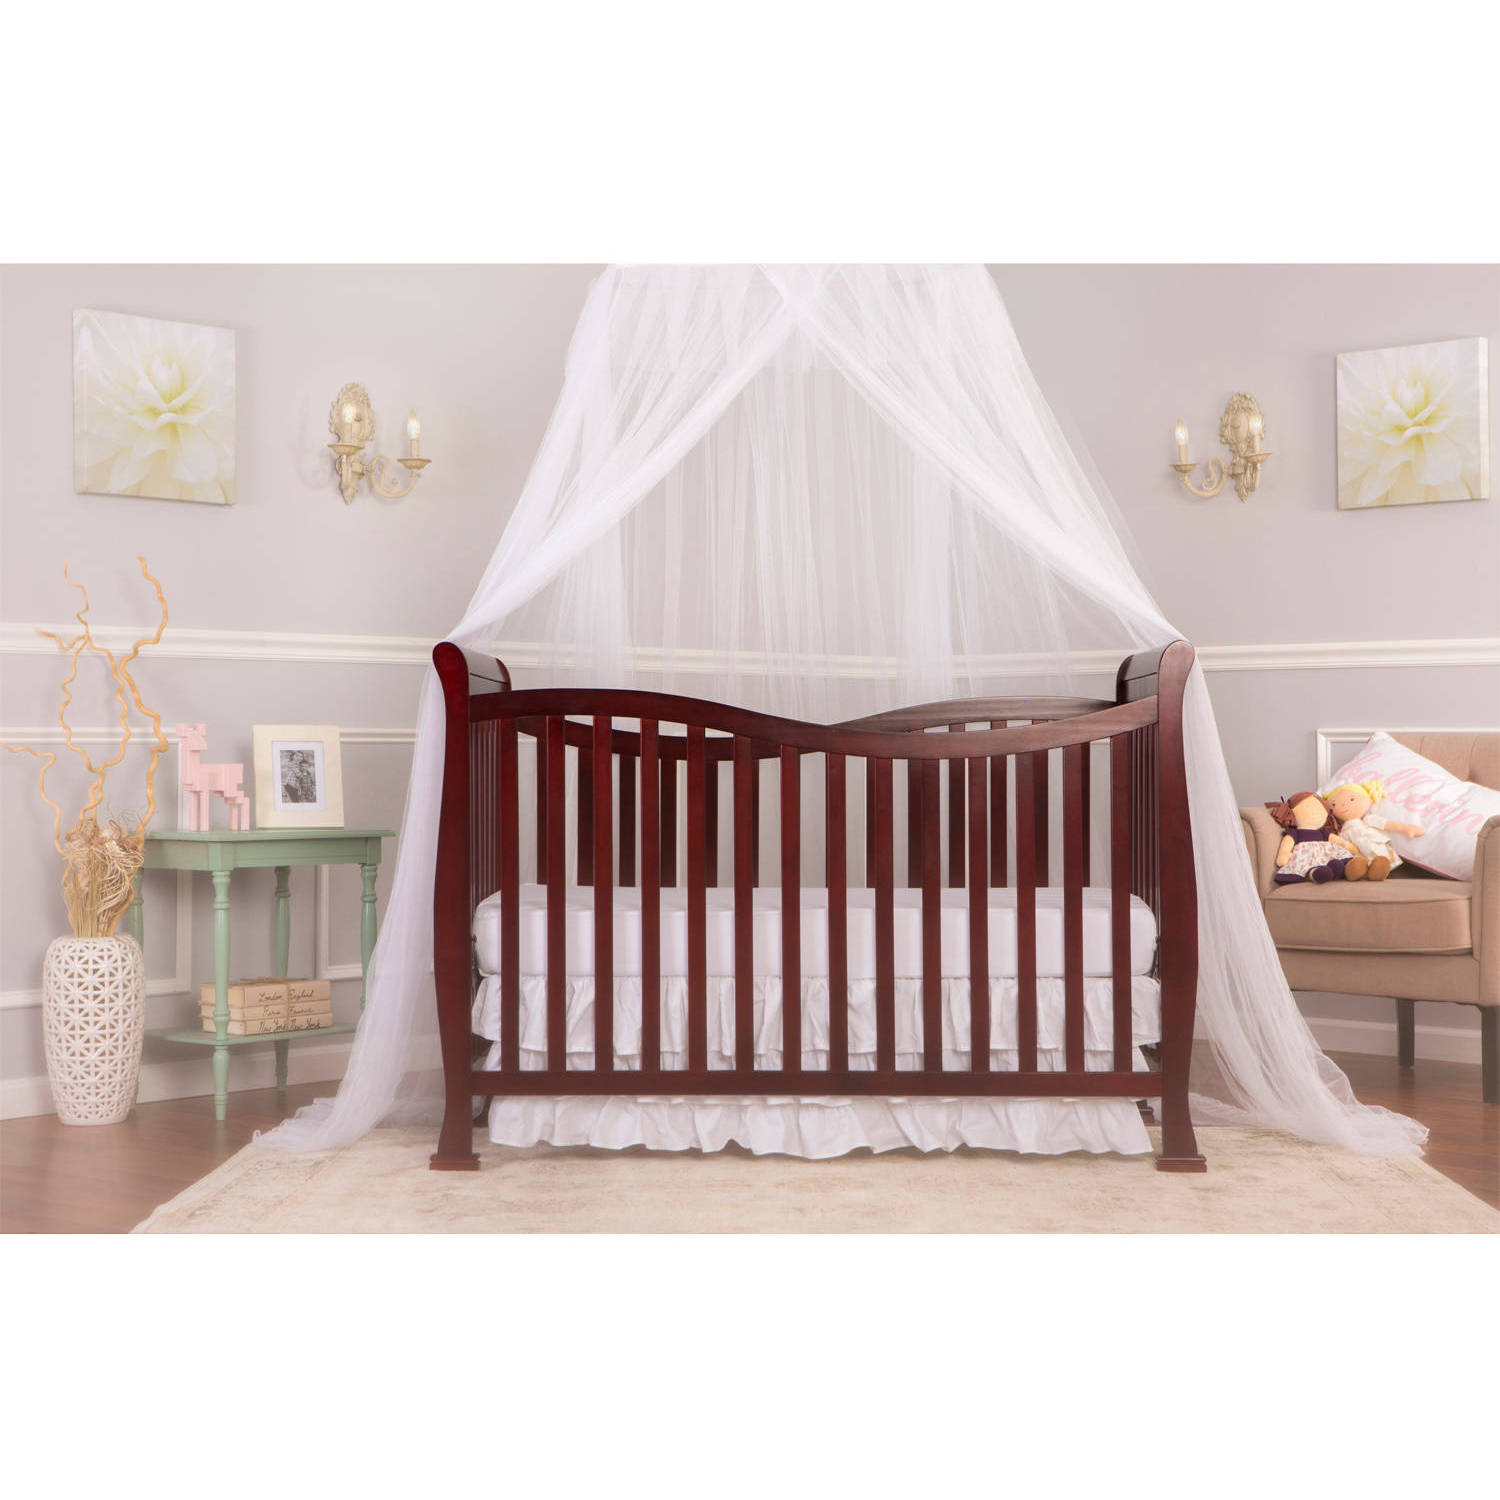 Dream On Me 7-in-1 Convertible Life style Crib, Cherry